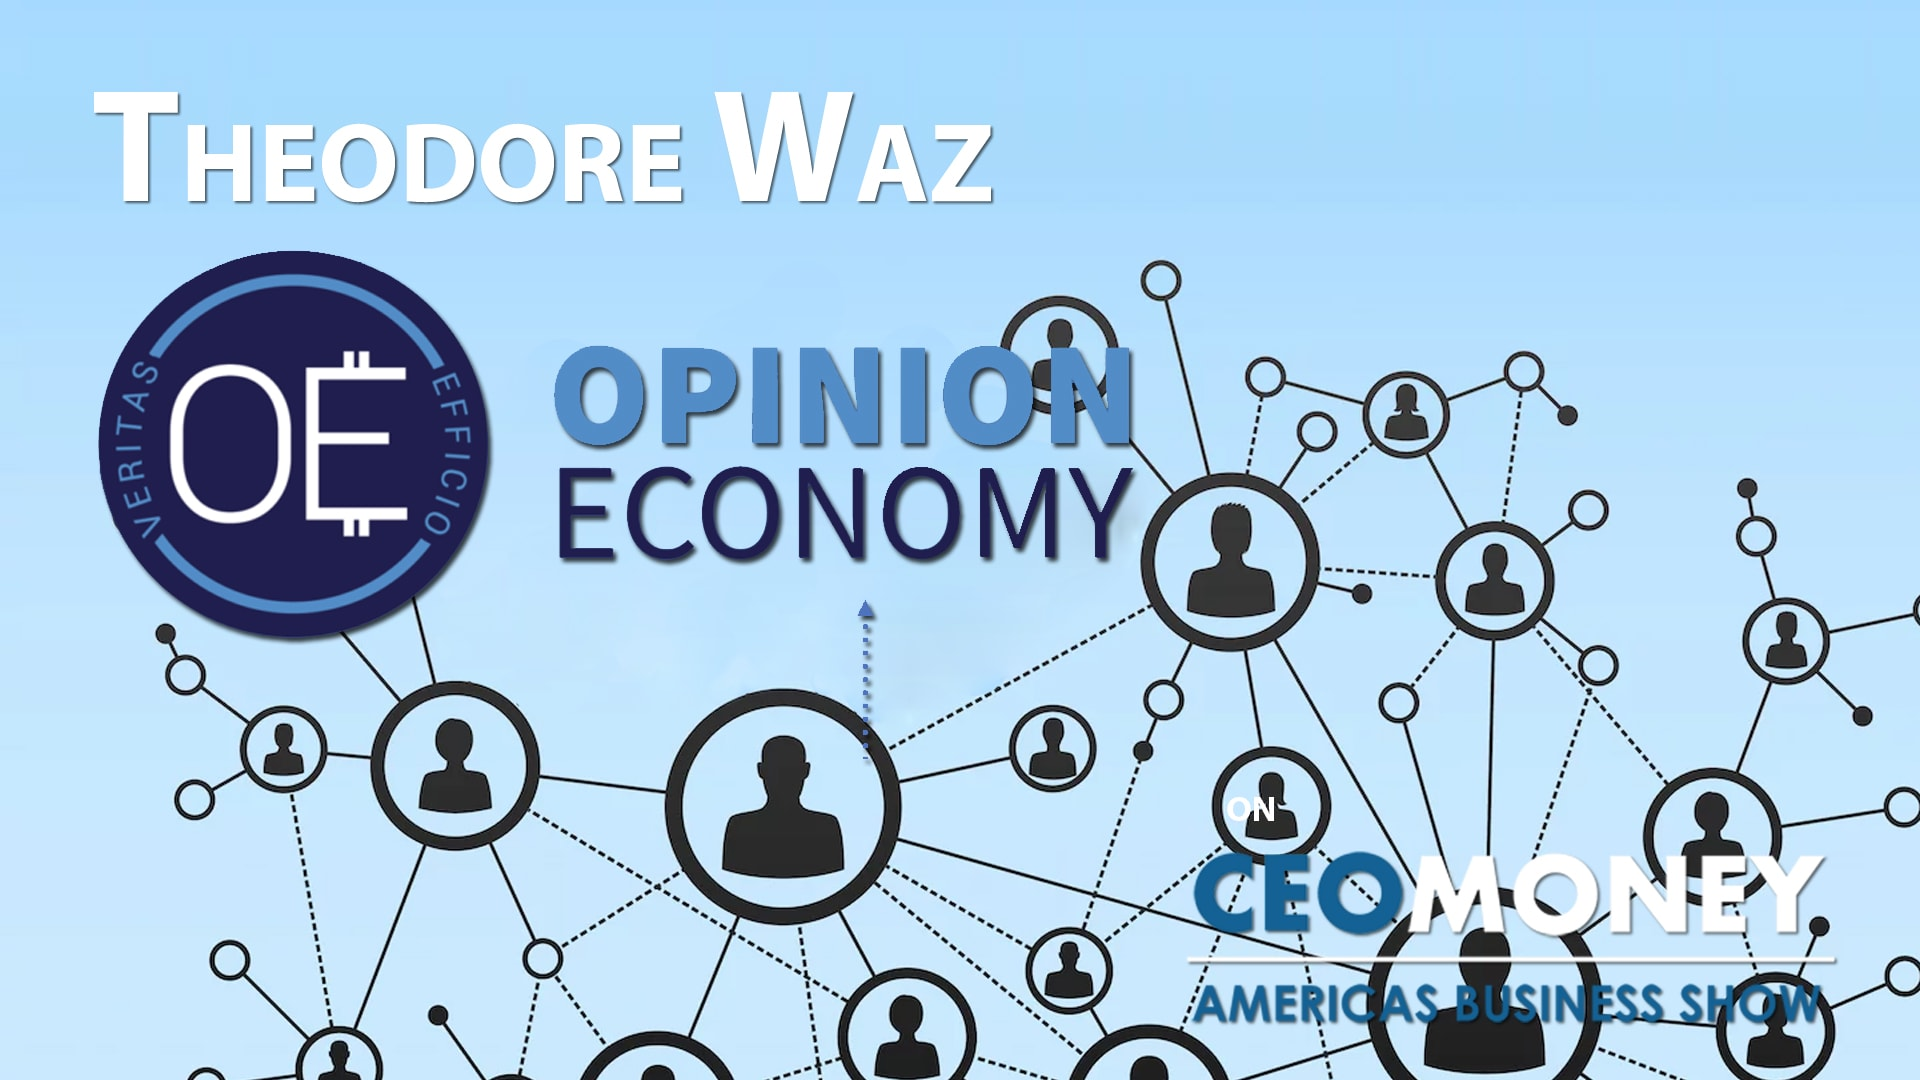 Ted Waz on how the Opinion Economy is using blockchain tech to create a consumer data economy